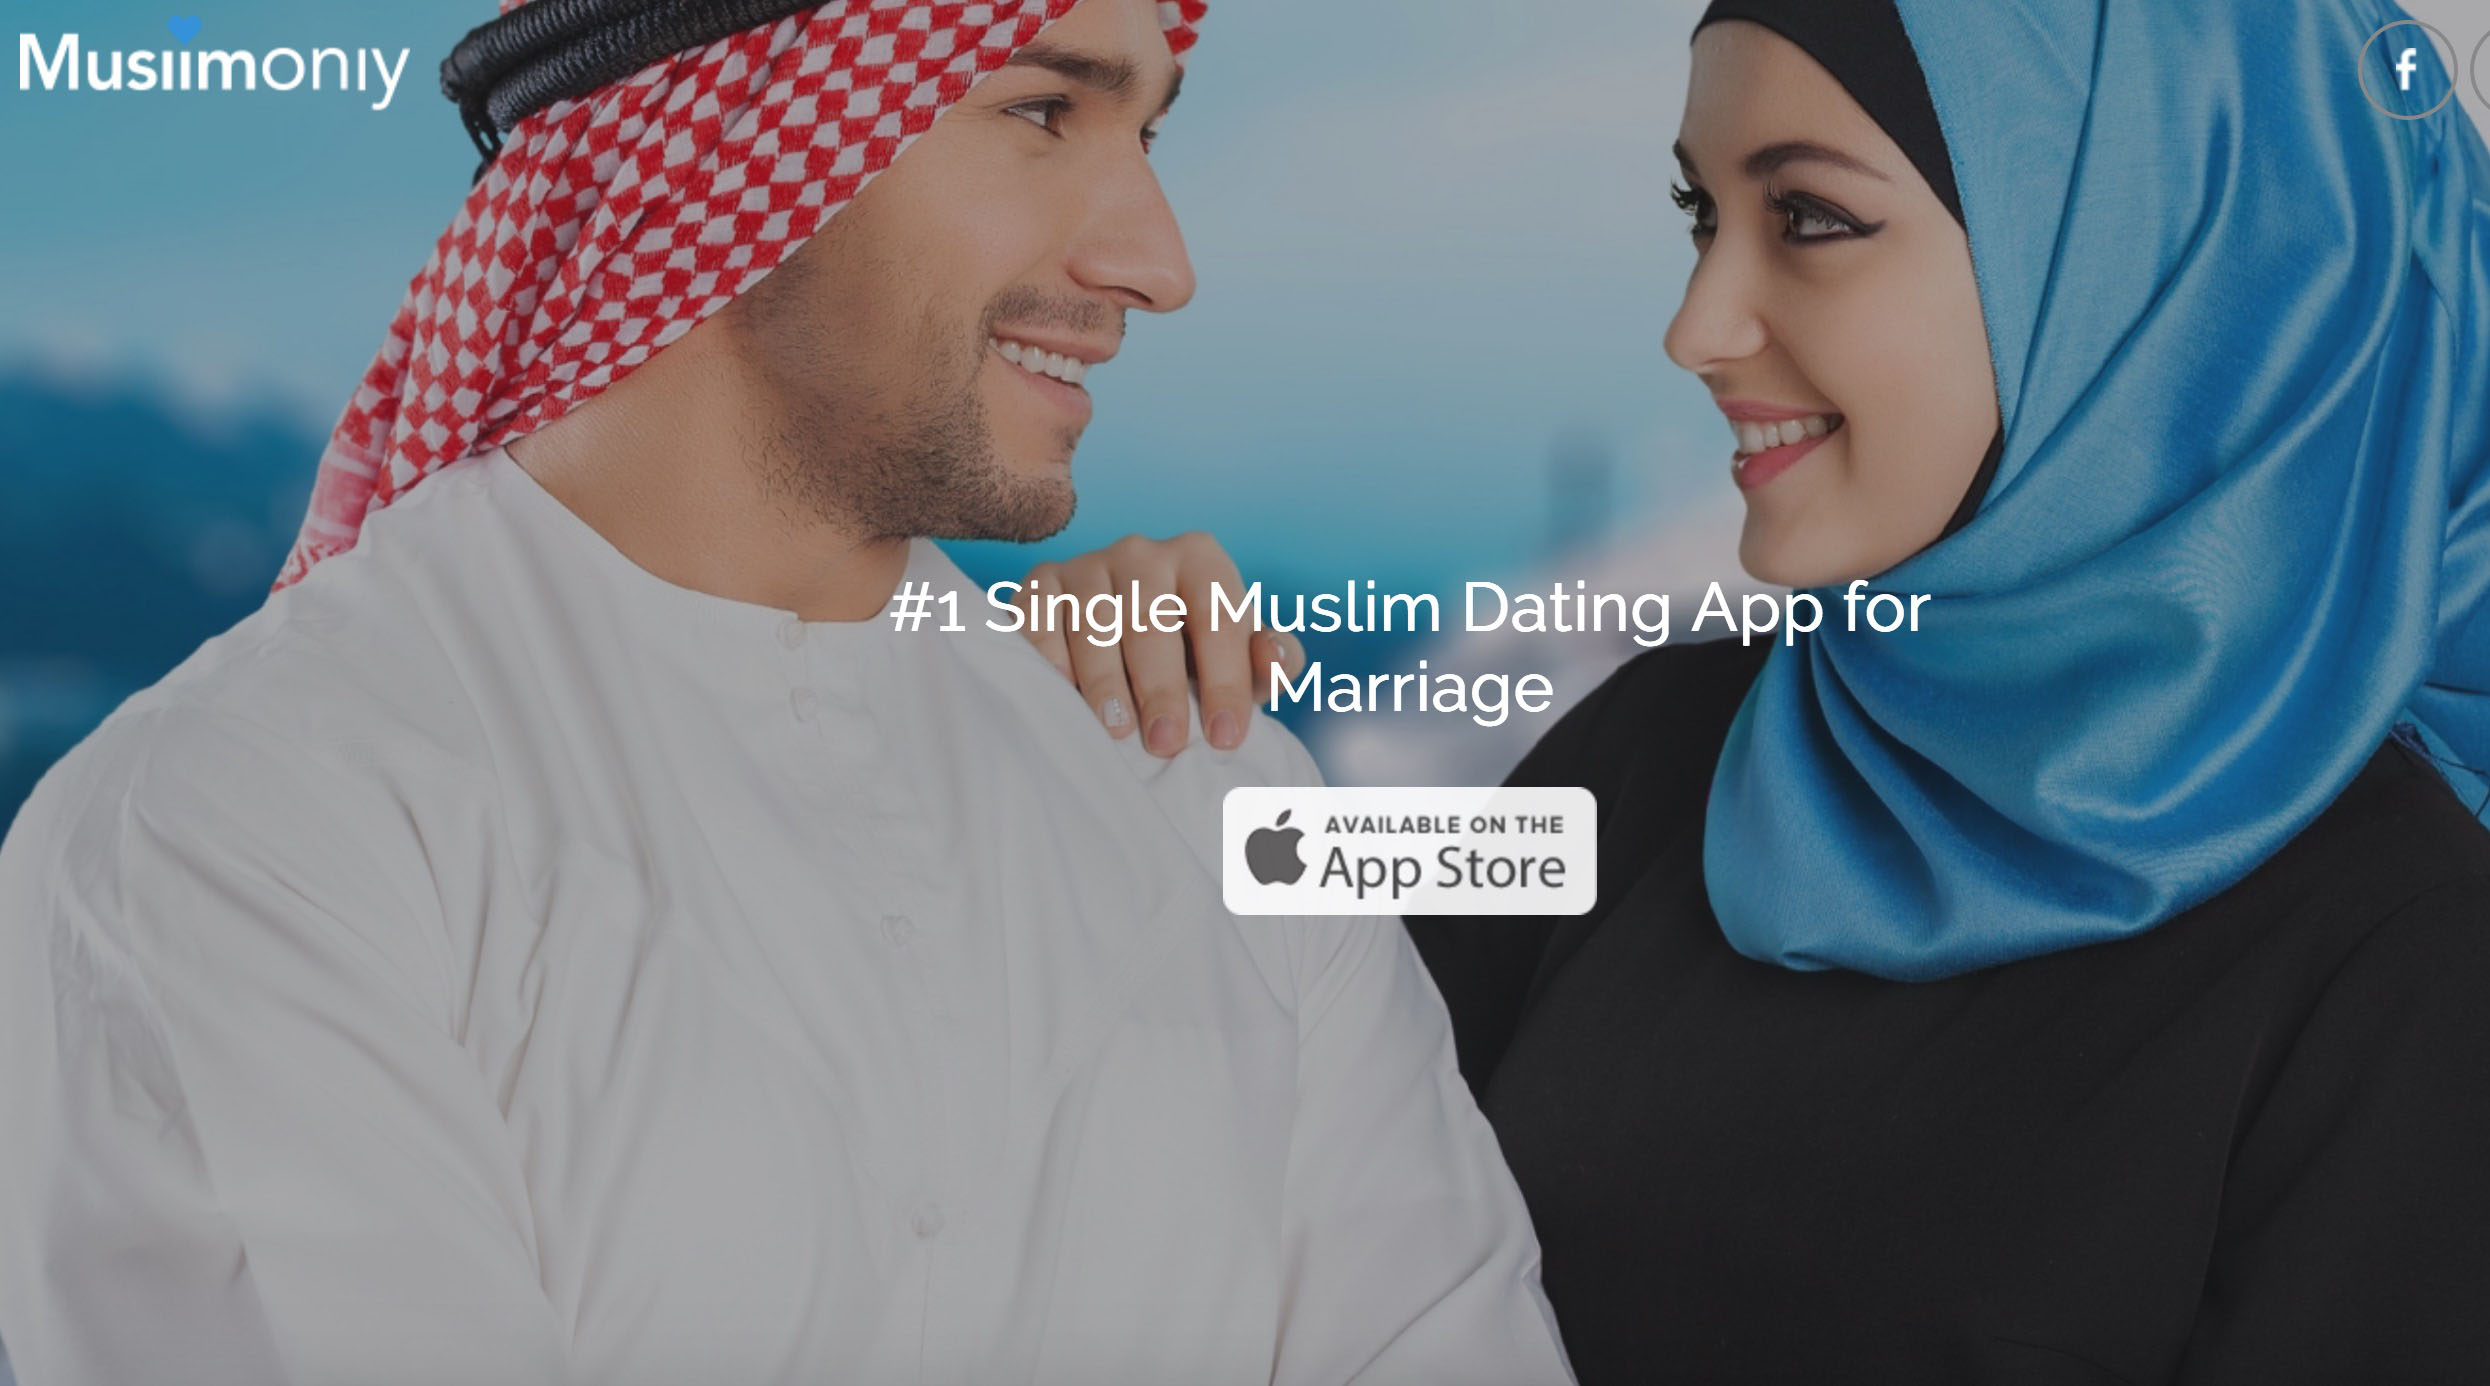 muslim singles in king They're coming at us, and we have to be on our guard at all times, king said  sept 21 on fox news sunday if (the islamic state) went into.